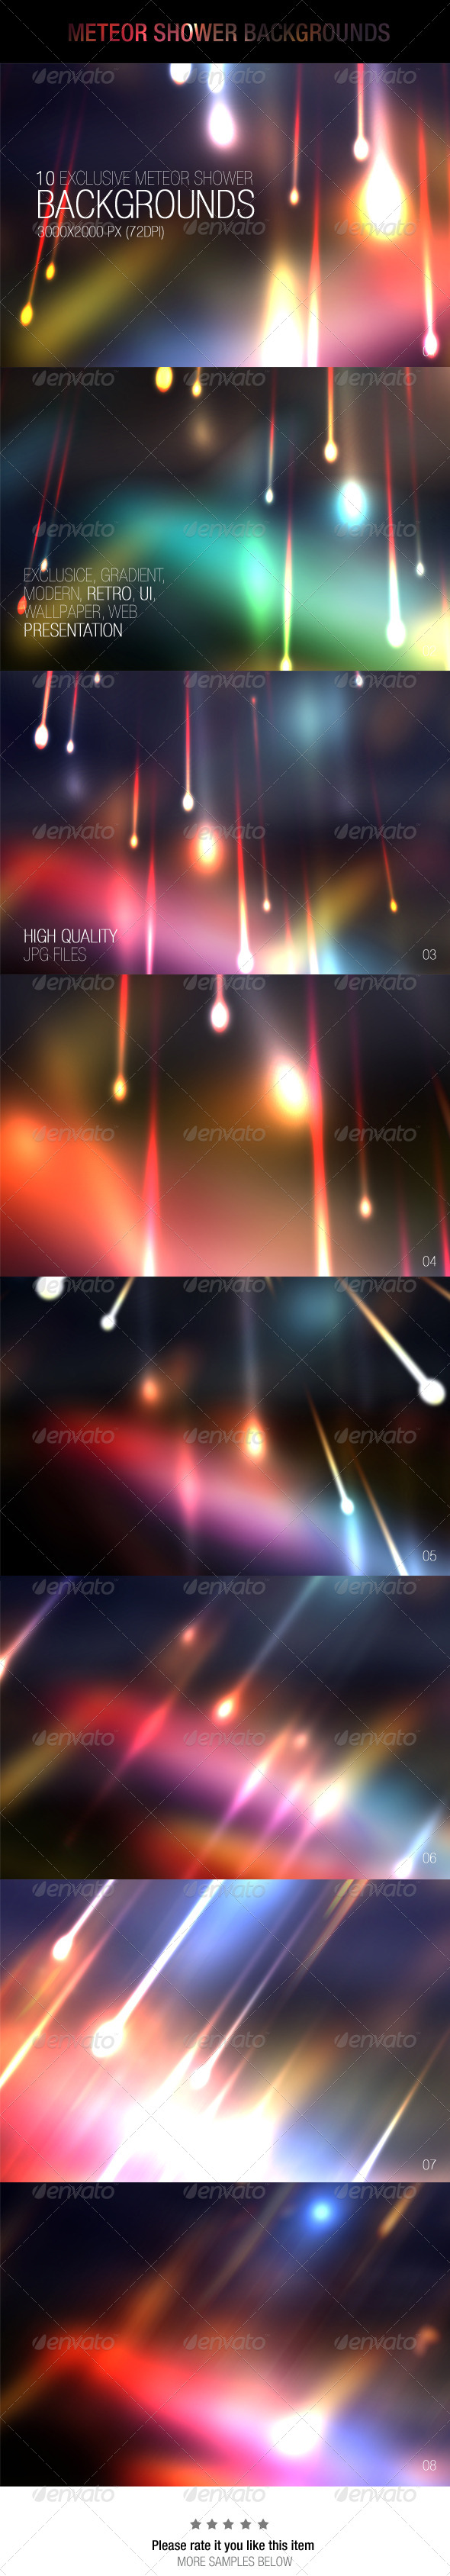 GraphicRiver Meteor Shower Backgrounds 6965906